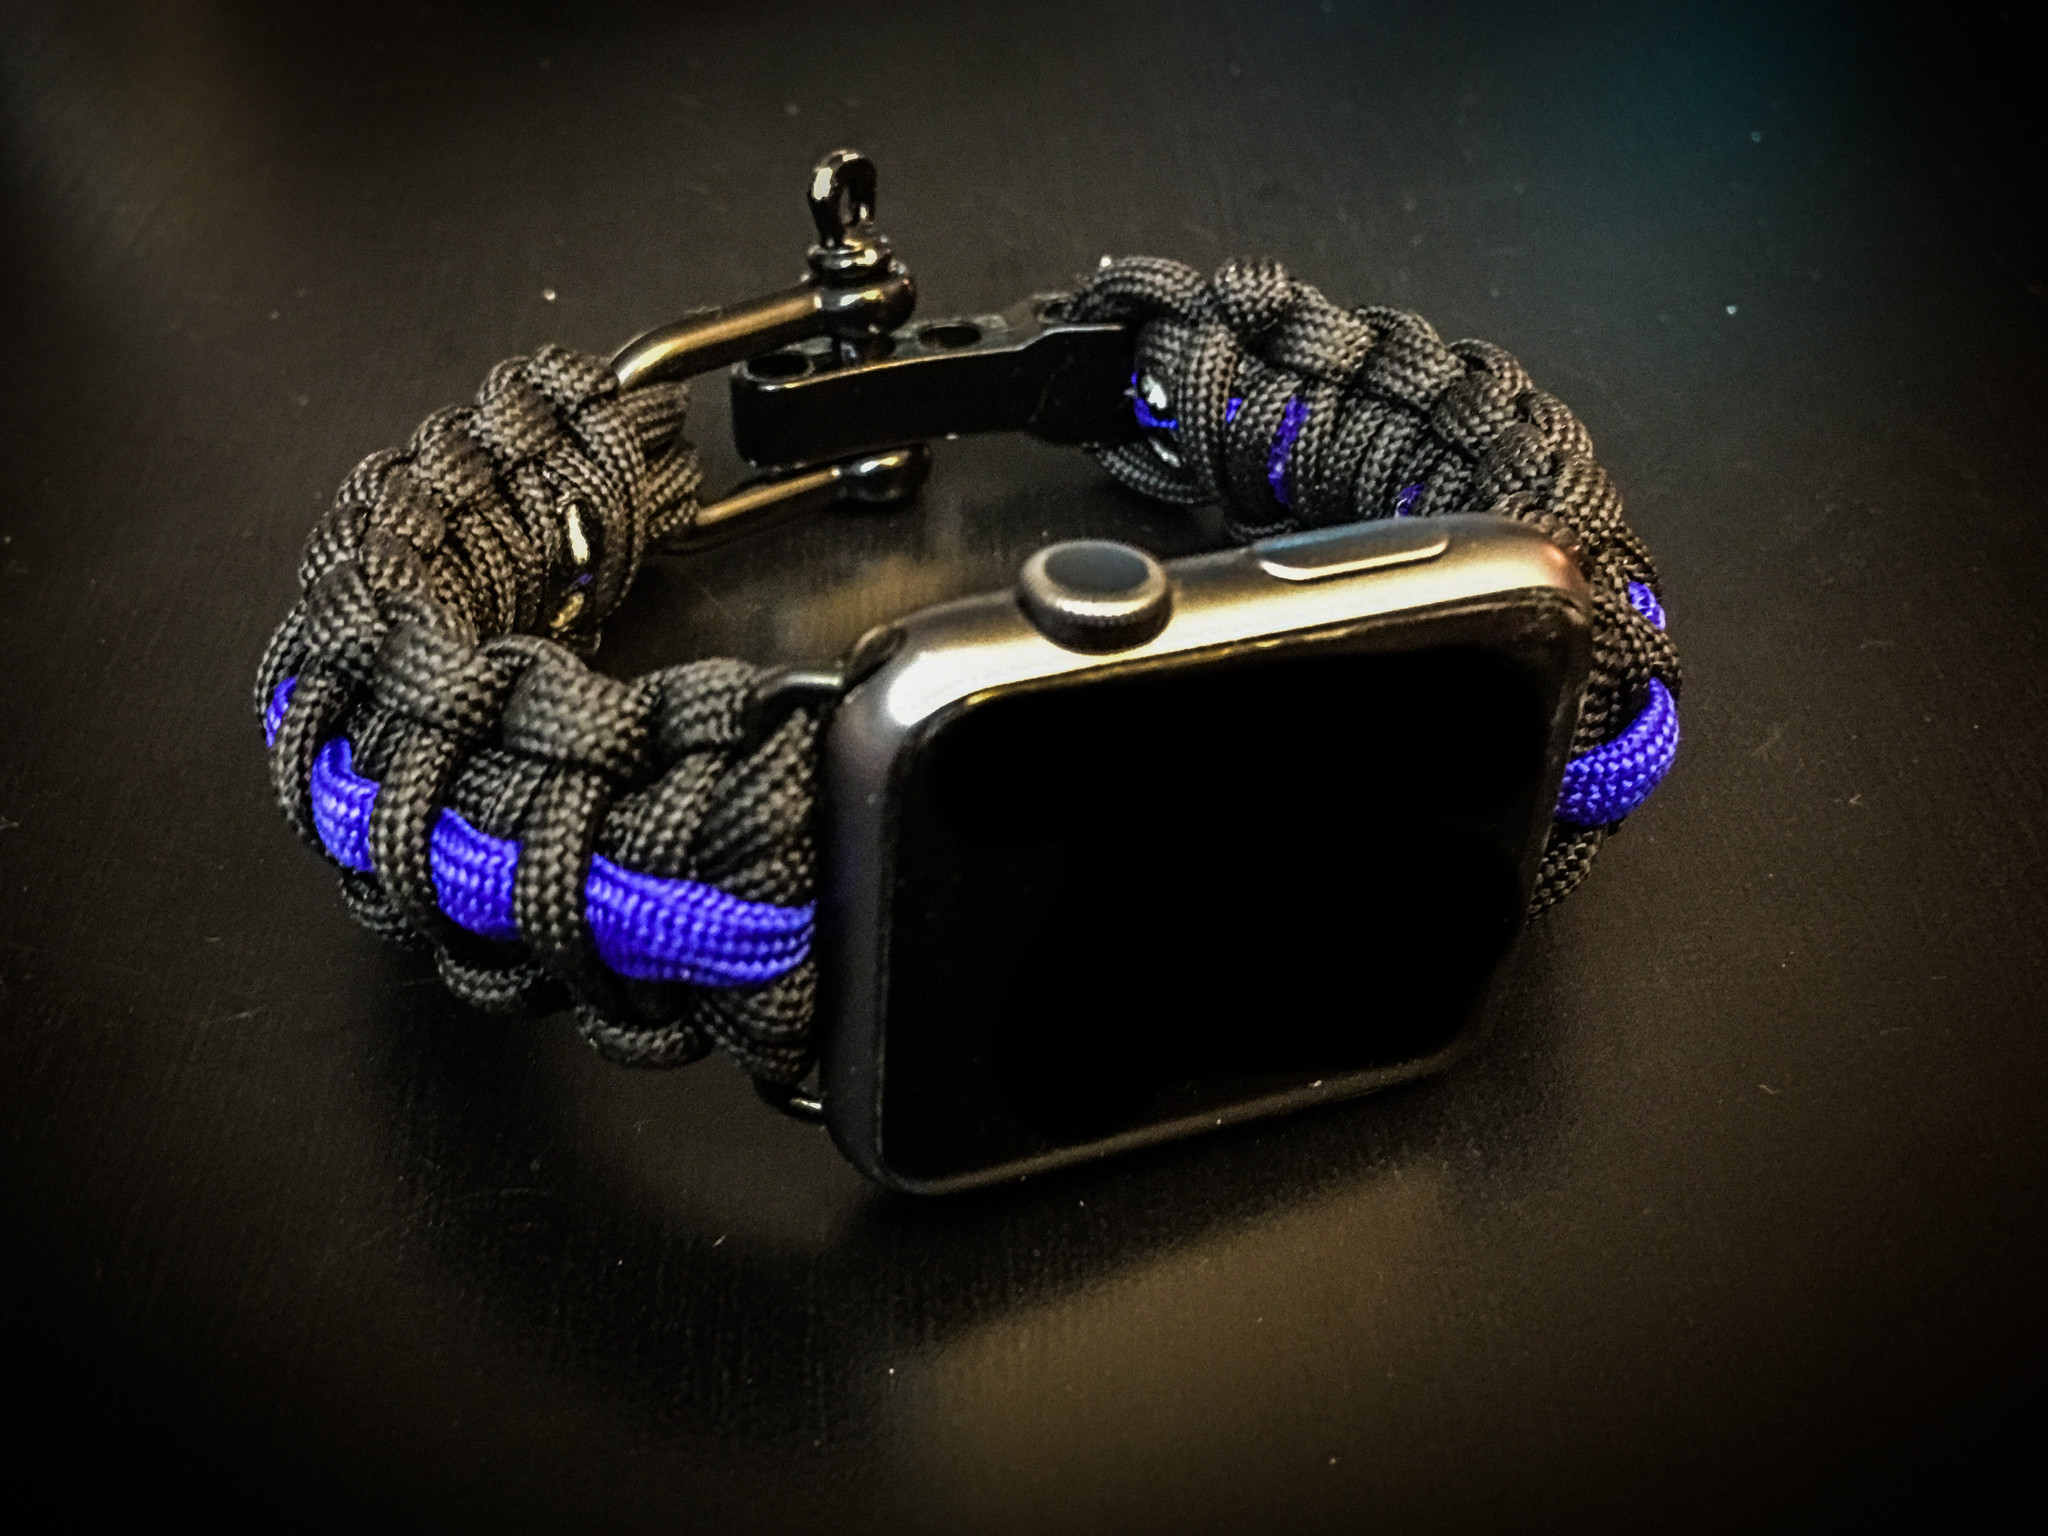 Apple Watch Paracord Band - Thin Blue Line Style, Police, Law Enforcement,  Black Stainless Steel Adjustable Clasp, 550lb MILSPEC cord